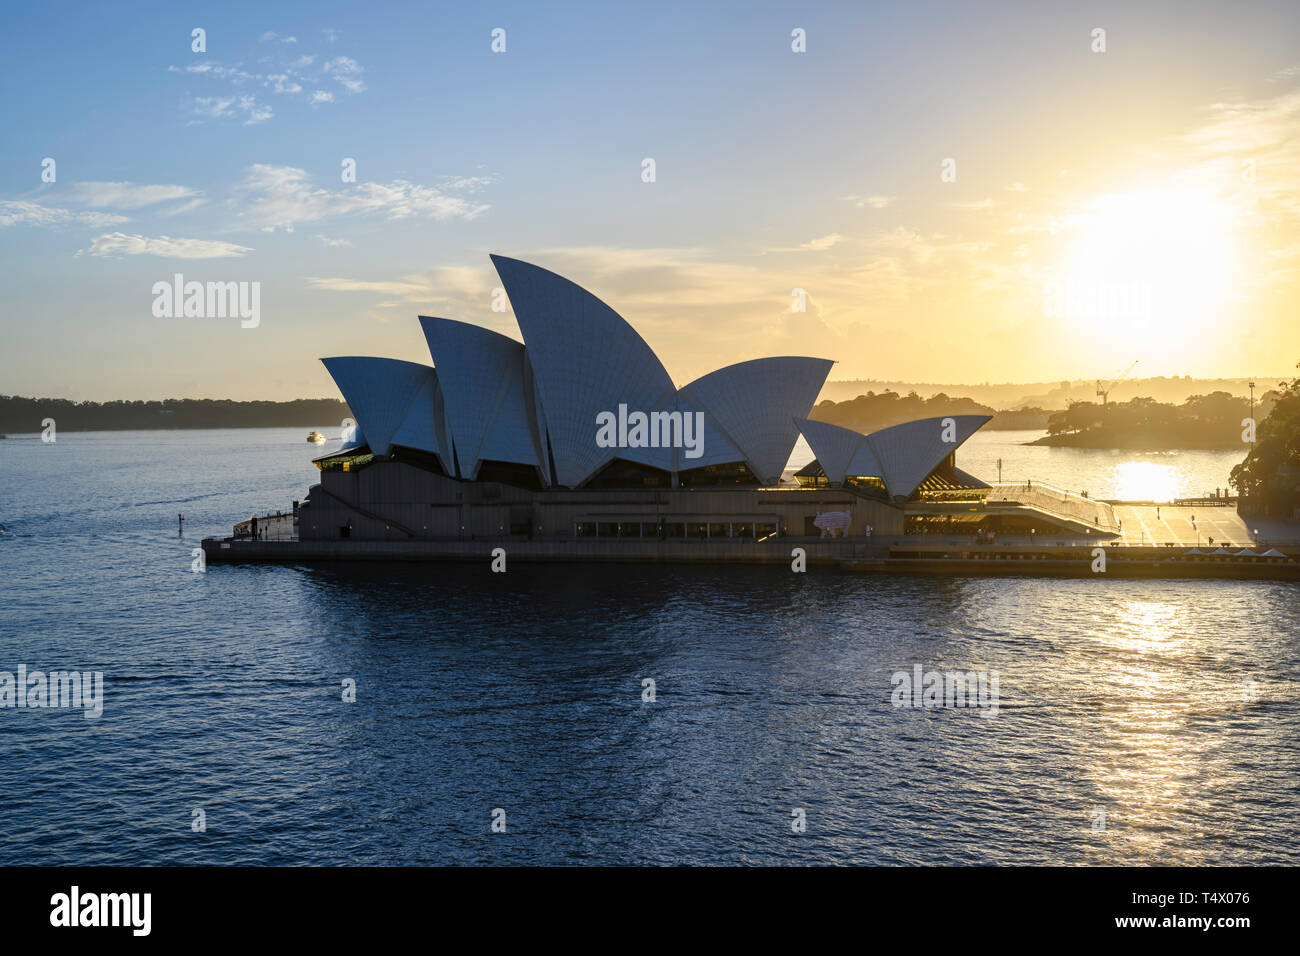 Dawn view of Sydney Opera House, a performing arts centre at Sydney harbour, New South Wales, Australia.  Designed by Jørn Utzon, it opened in 1973. Stock Photo